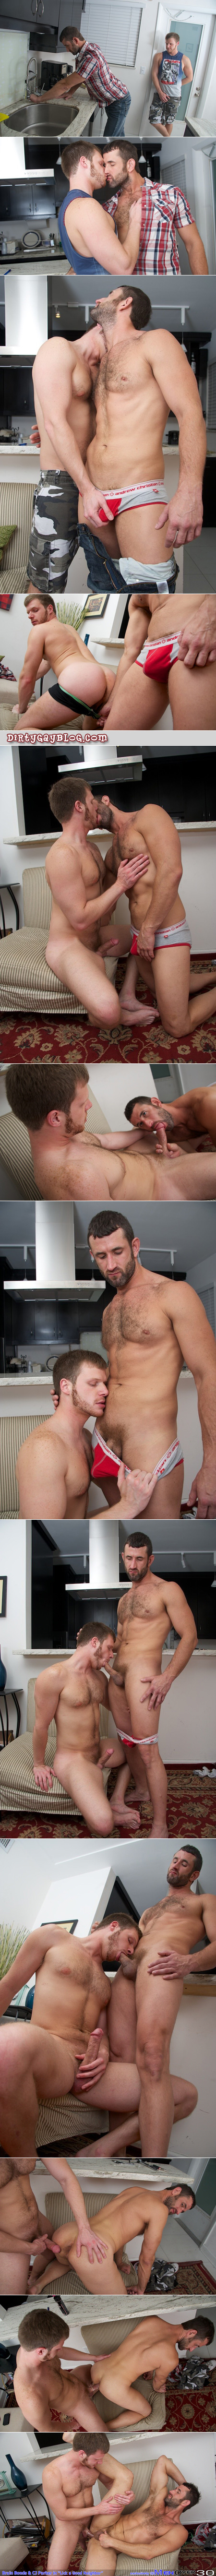 Bearded ginger has gay anal sex with his tall, dark, handsome plumber.